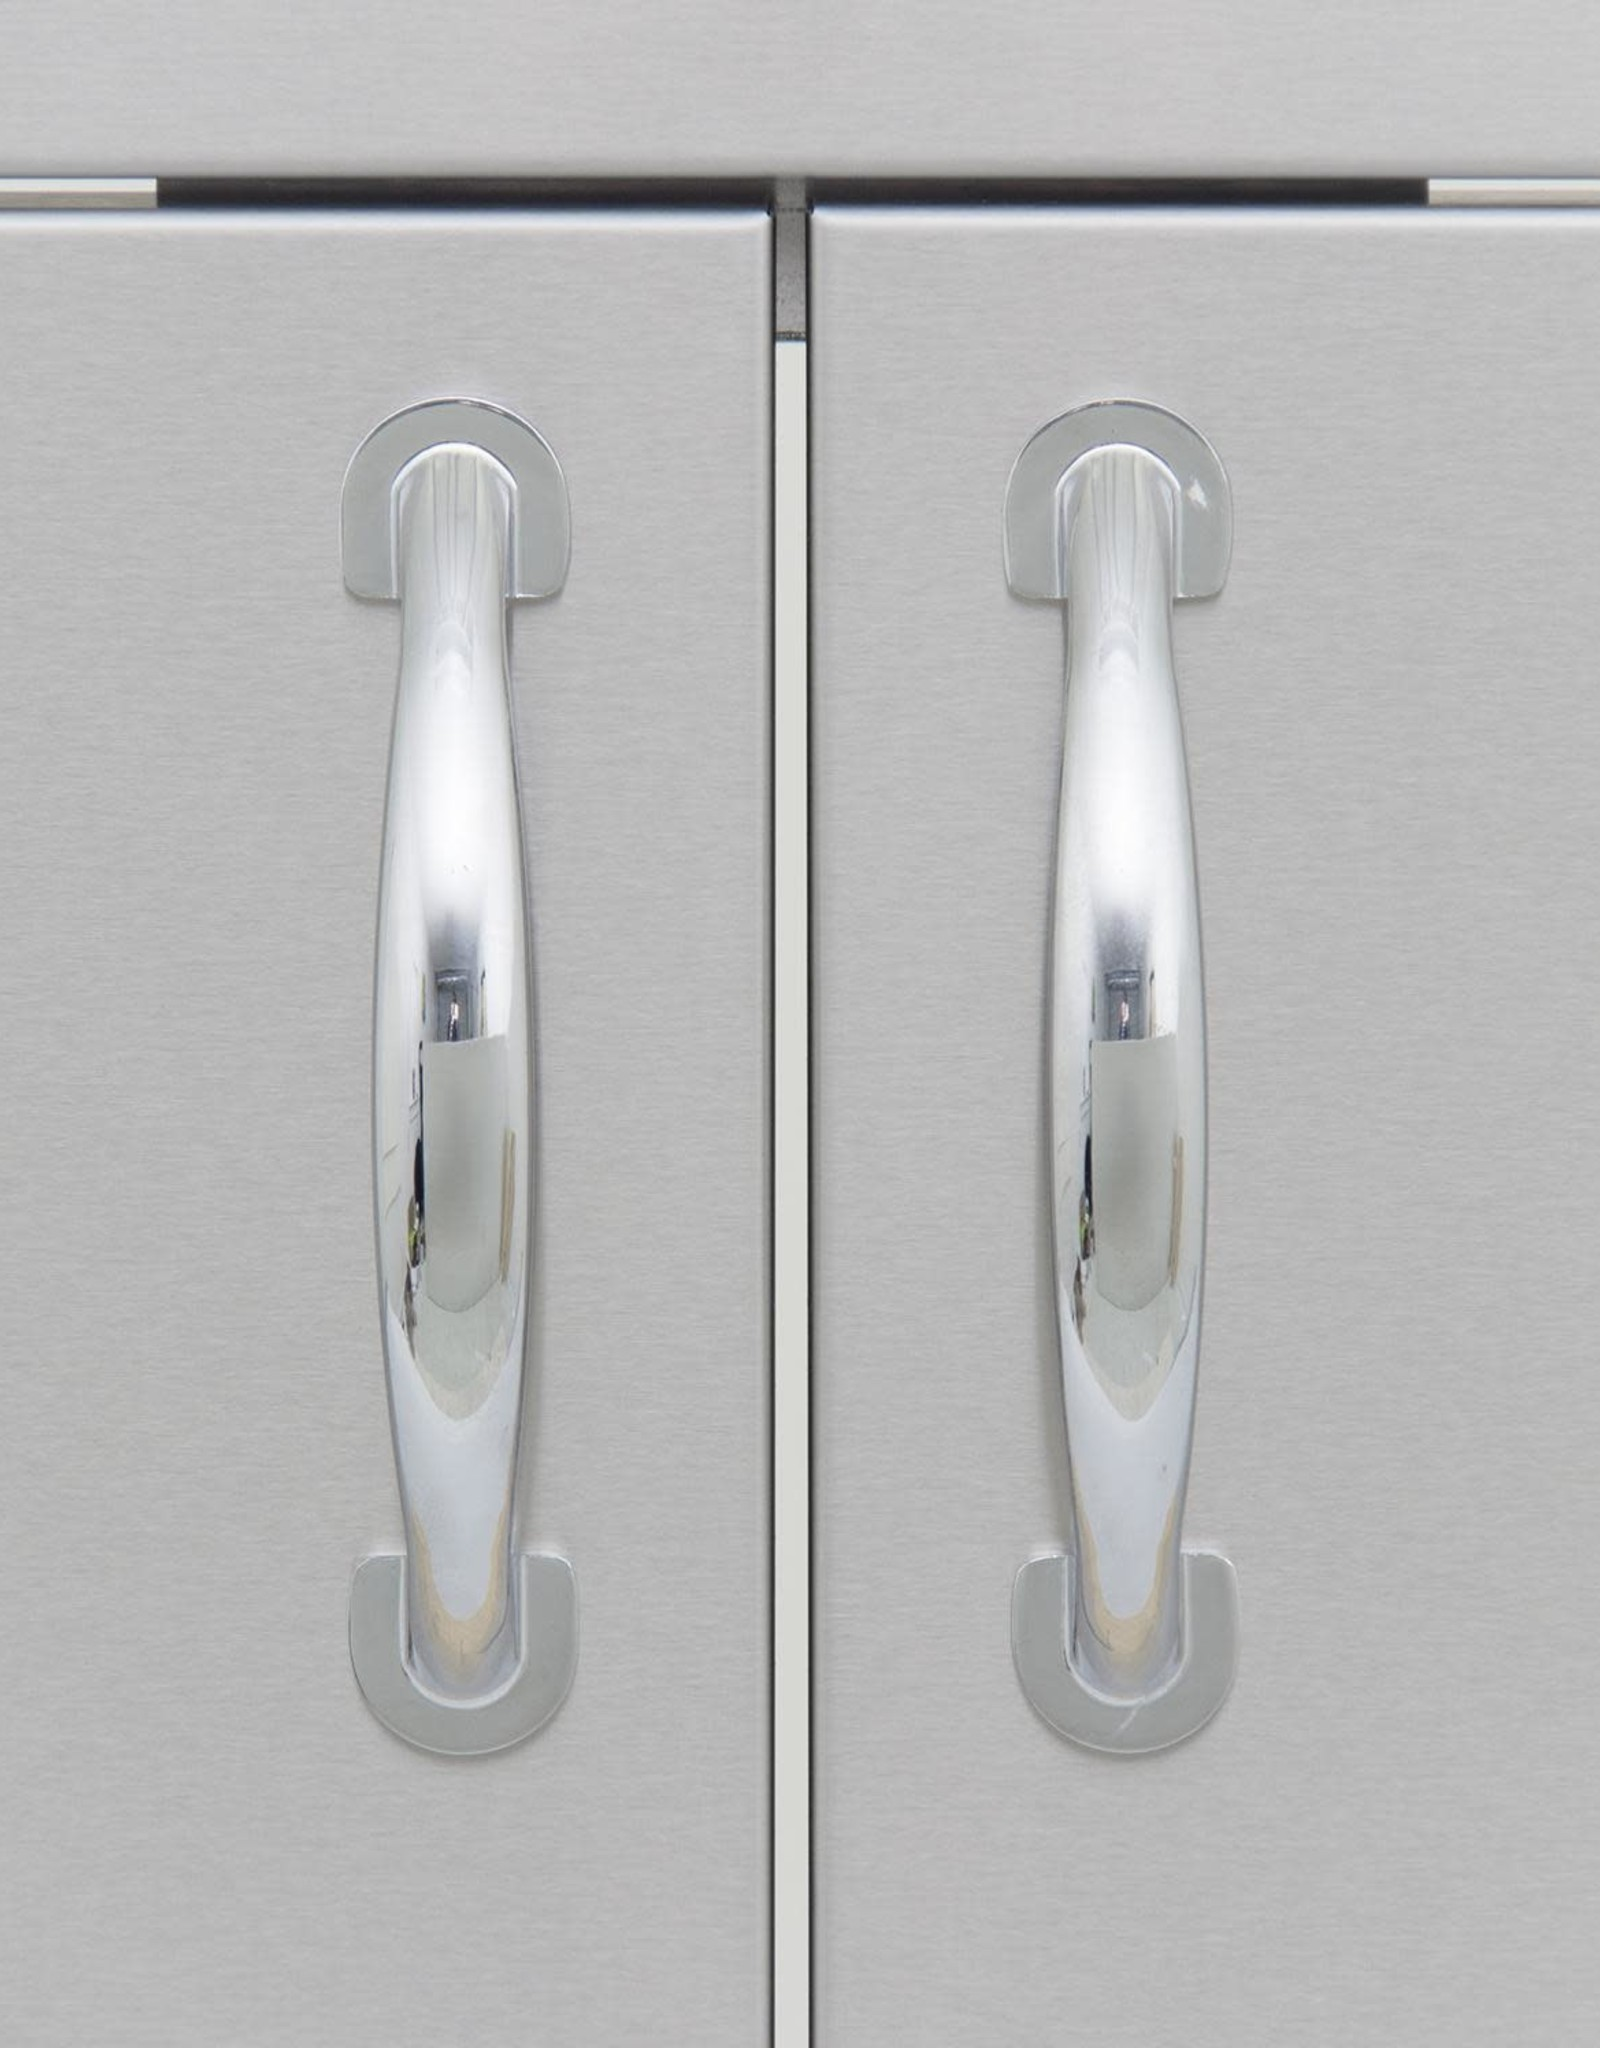 Blaze Outdoor Products Blaze 32-Inch Stainless Steel Double Access Door With Paper Towel Holder - BLZ-AD32-R